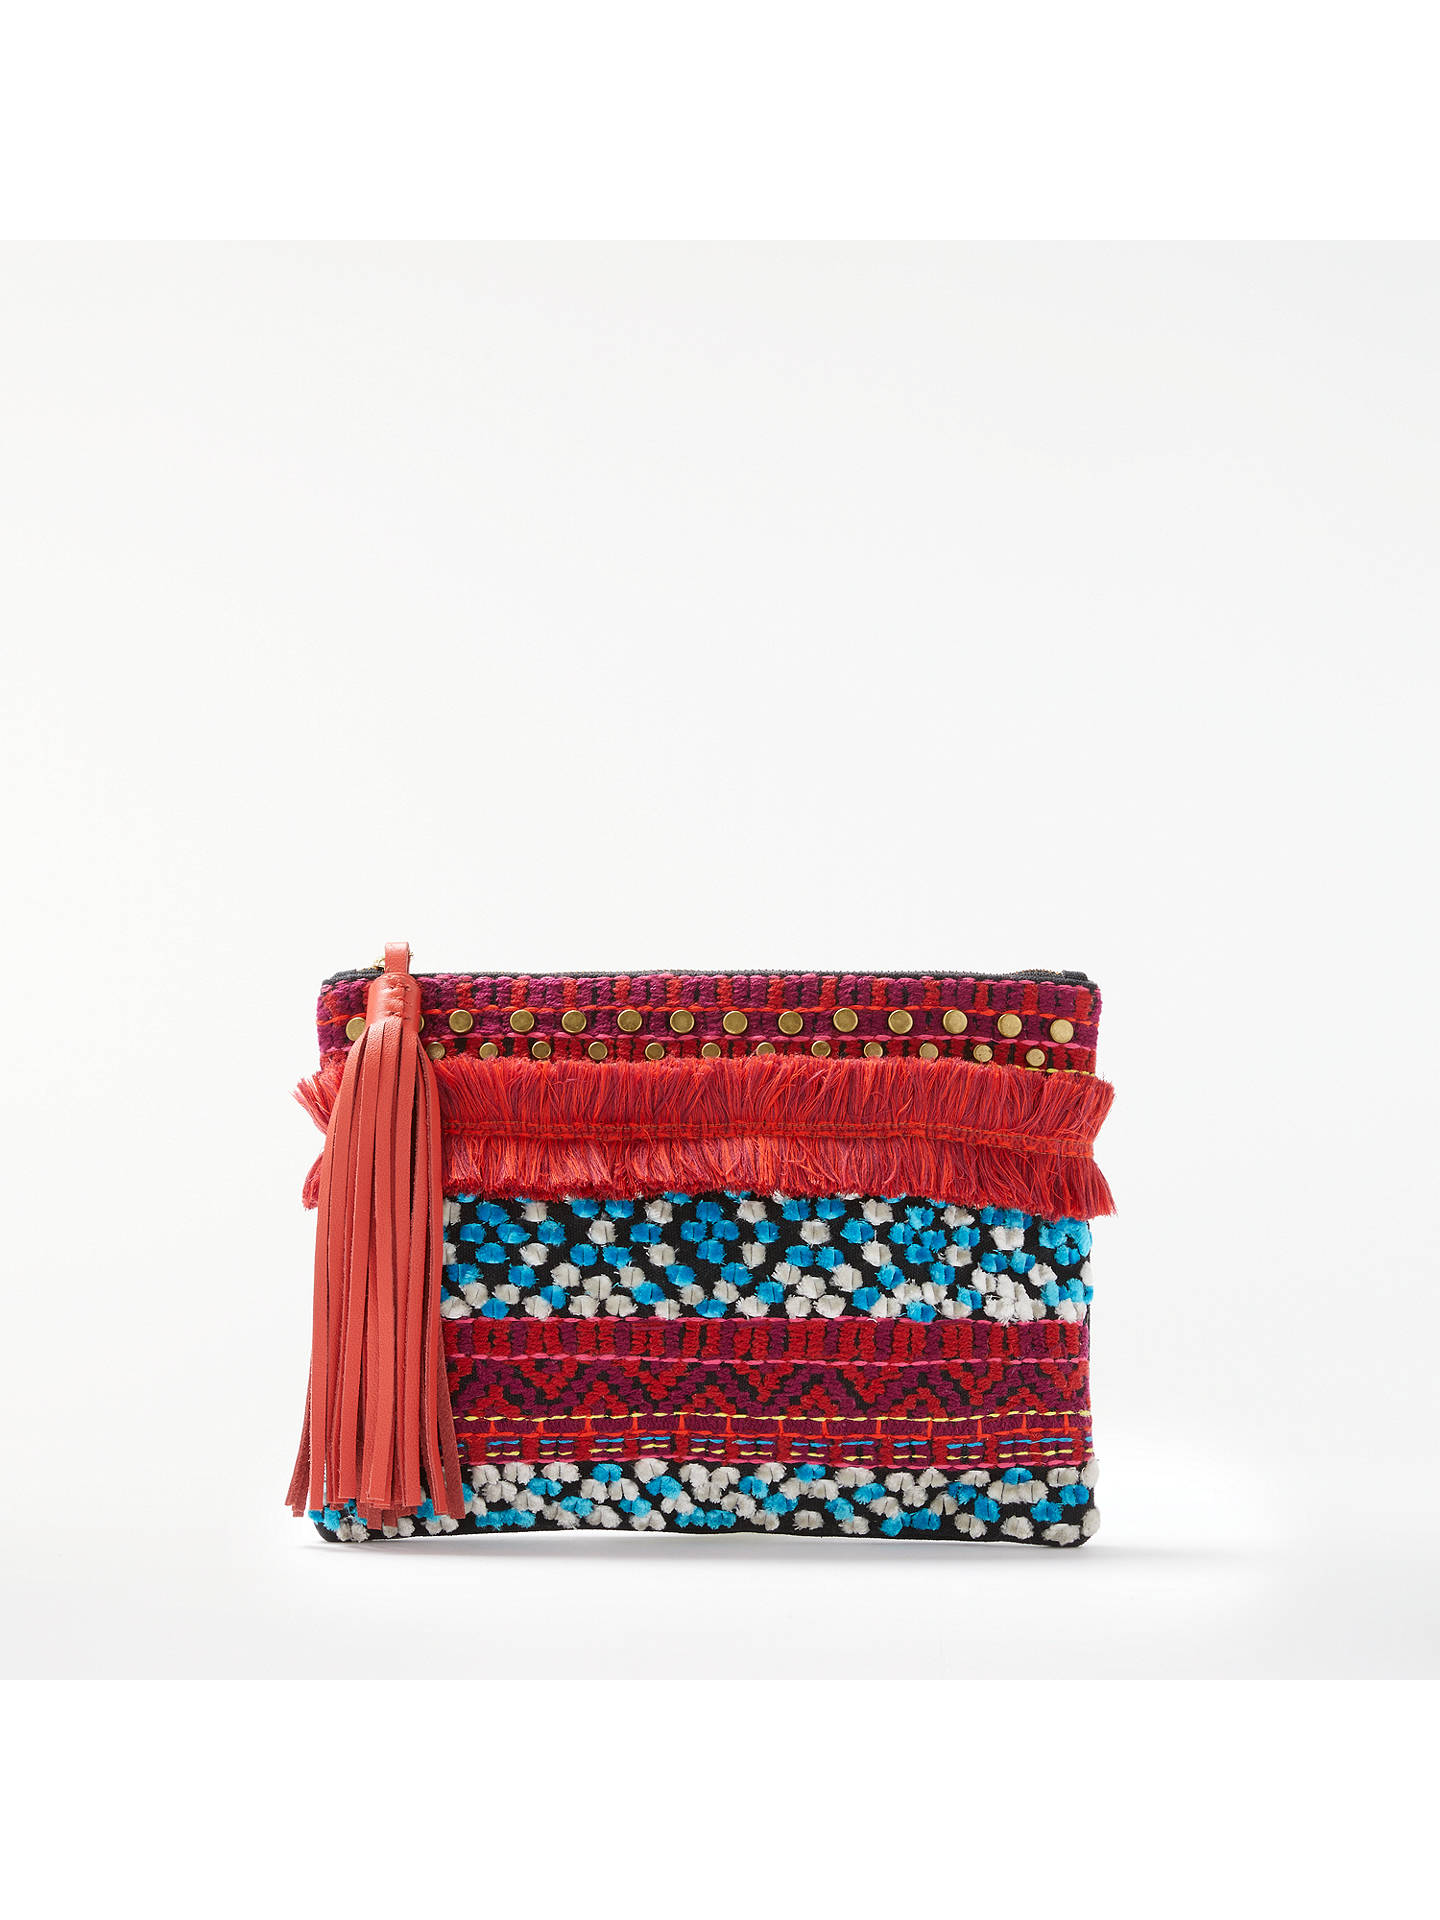 AND/OR Atala Embellished Clutch Bag, Multi at John Lewis & Partners